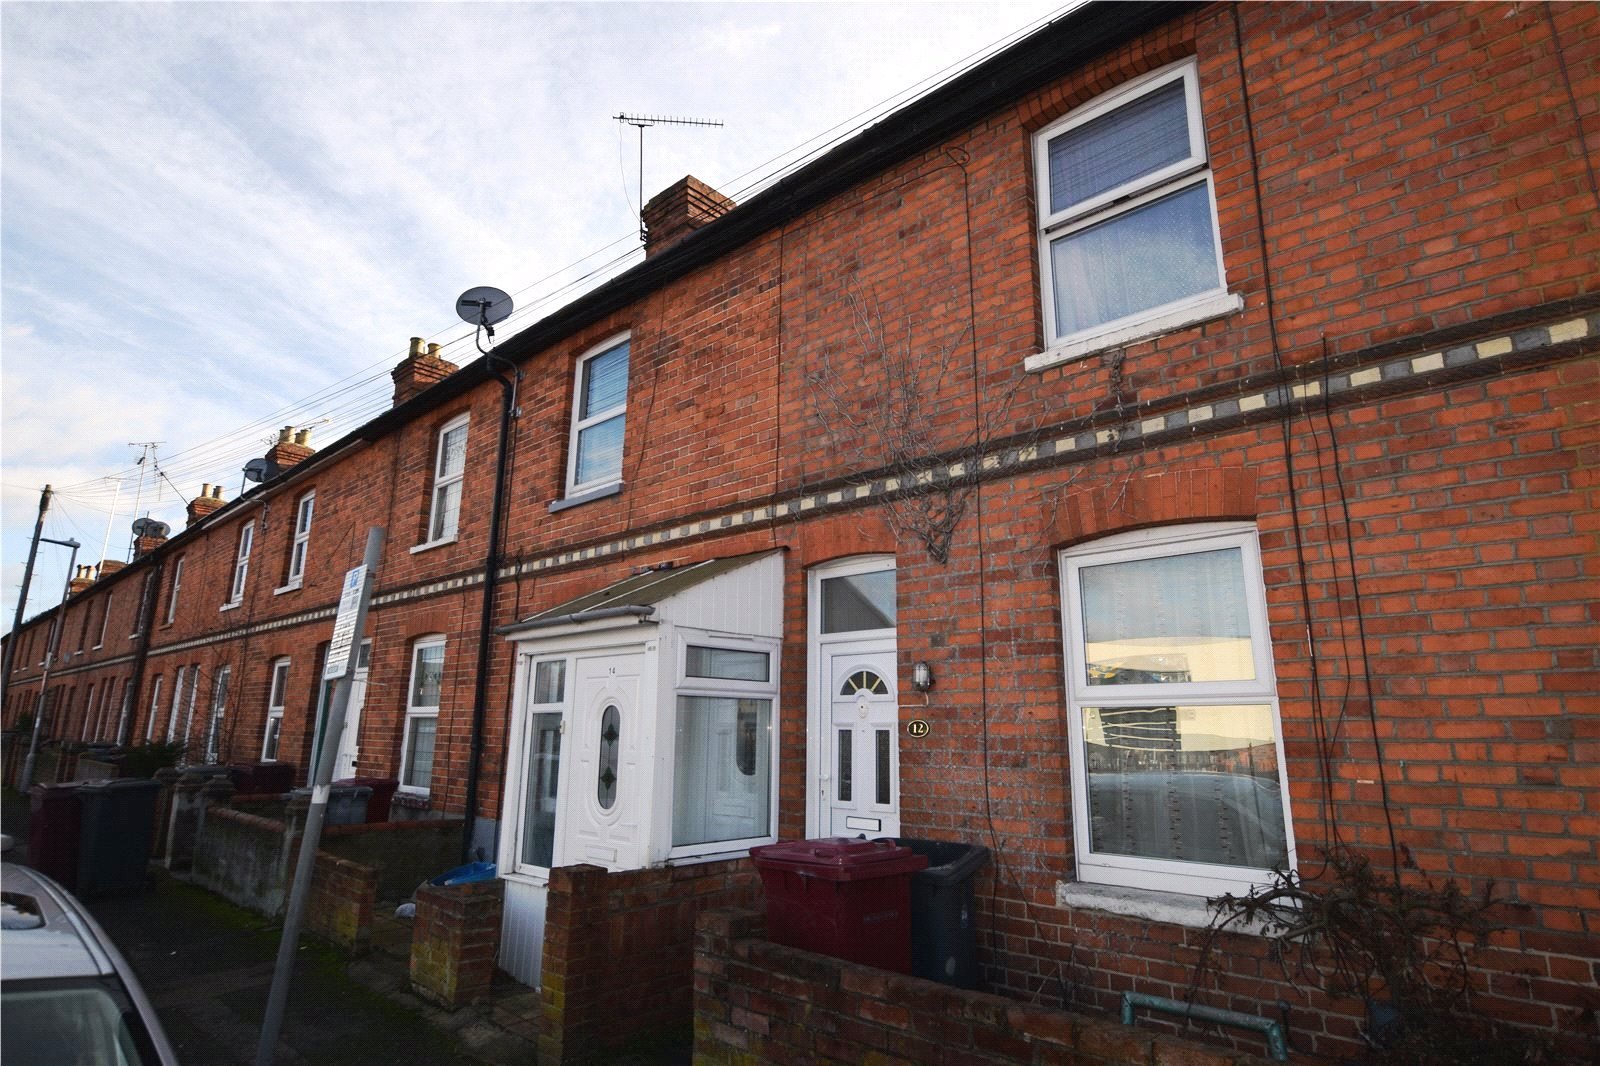 4 Bedrooms Terraced House for sale in Orts Road, Reading, Berkshire, RG1